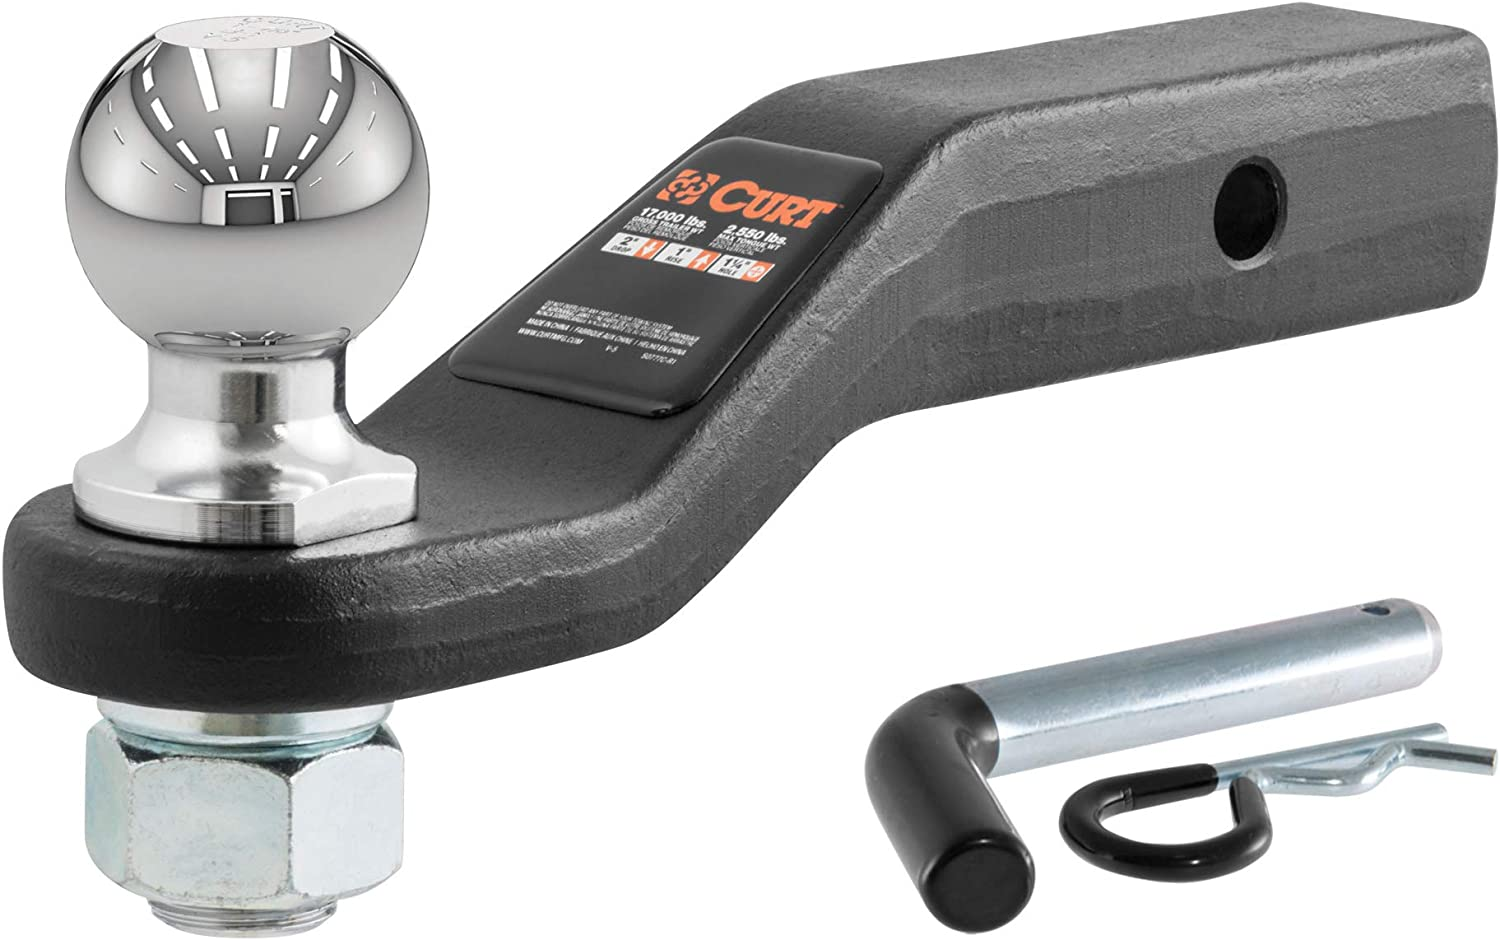 CURT 45331 Trailer Hitch Ball Mount with 2-5/16-Inch Trailer Ball & Hitch Pin, Fits 2-Inch Receiver, 17,000 lbs. GTW, 2-Inch Drop